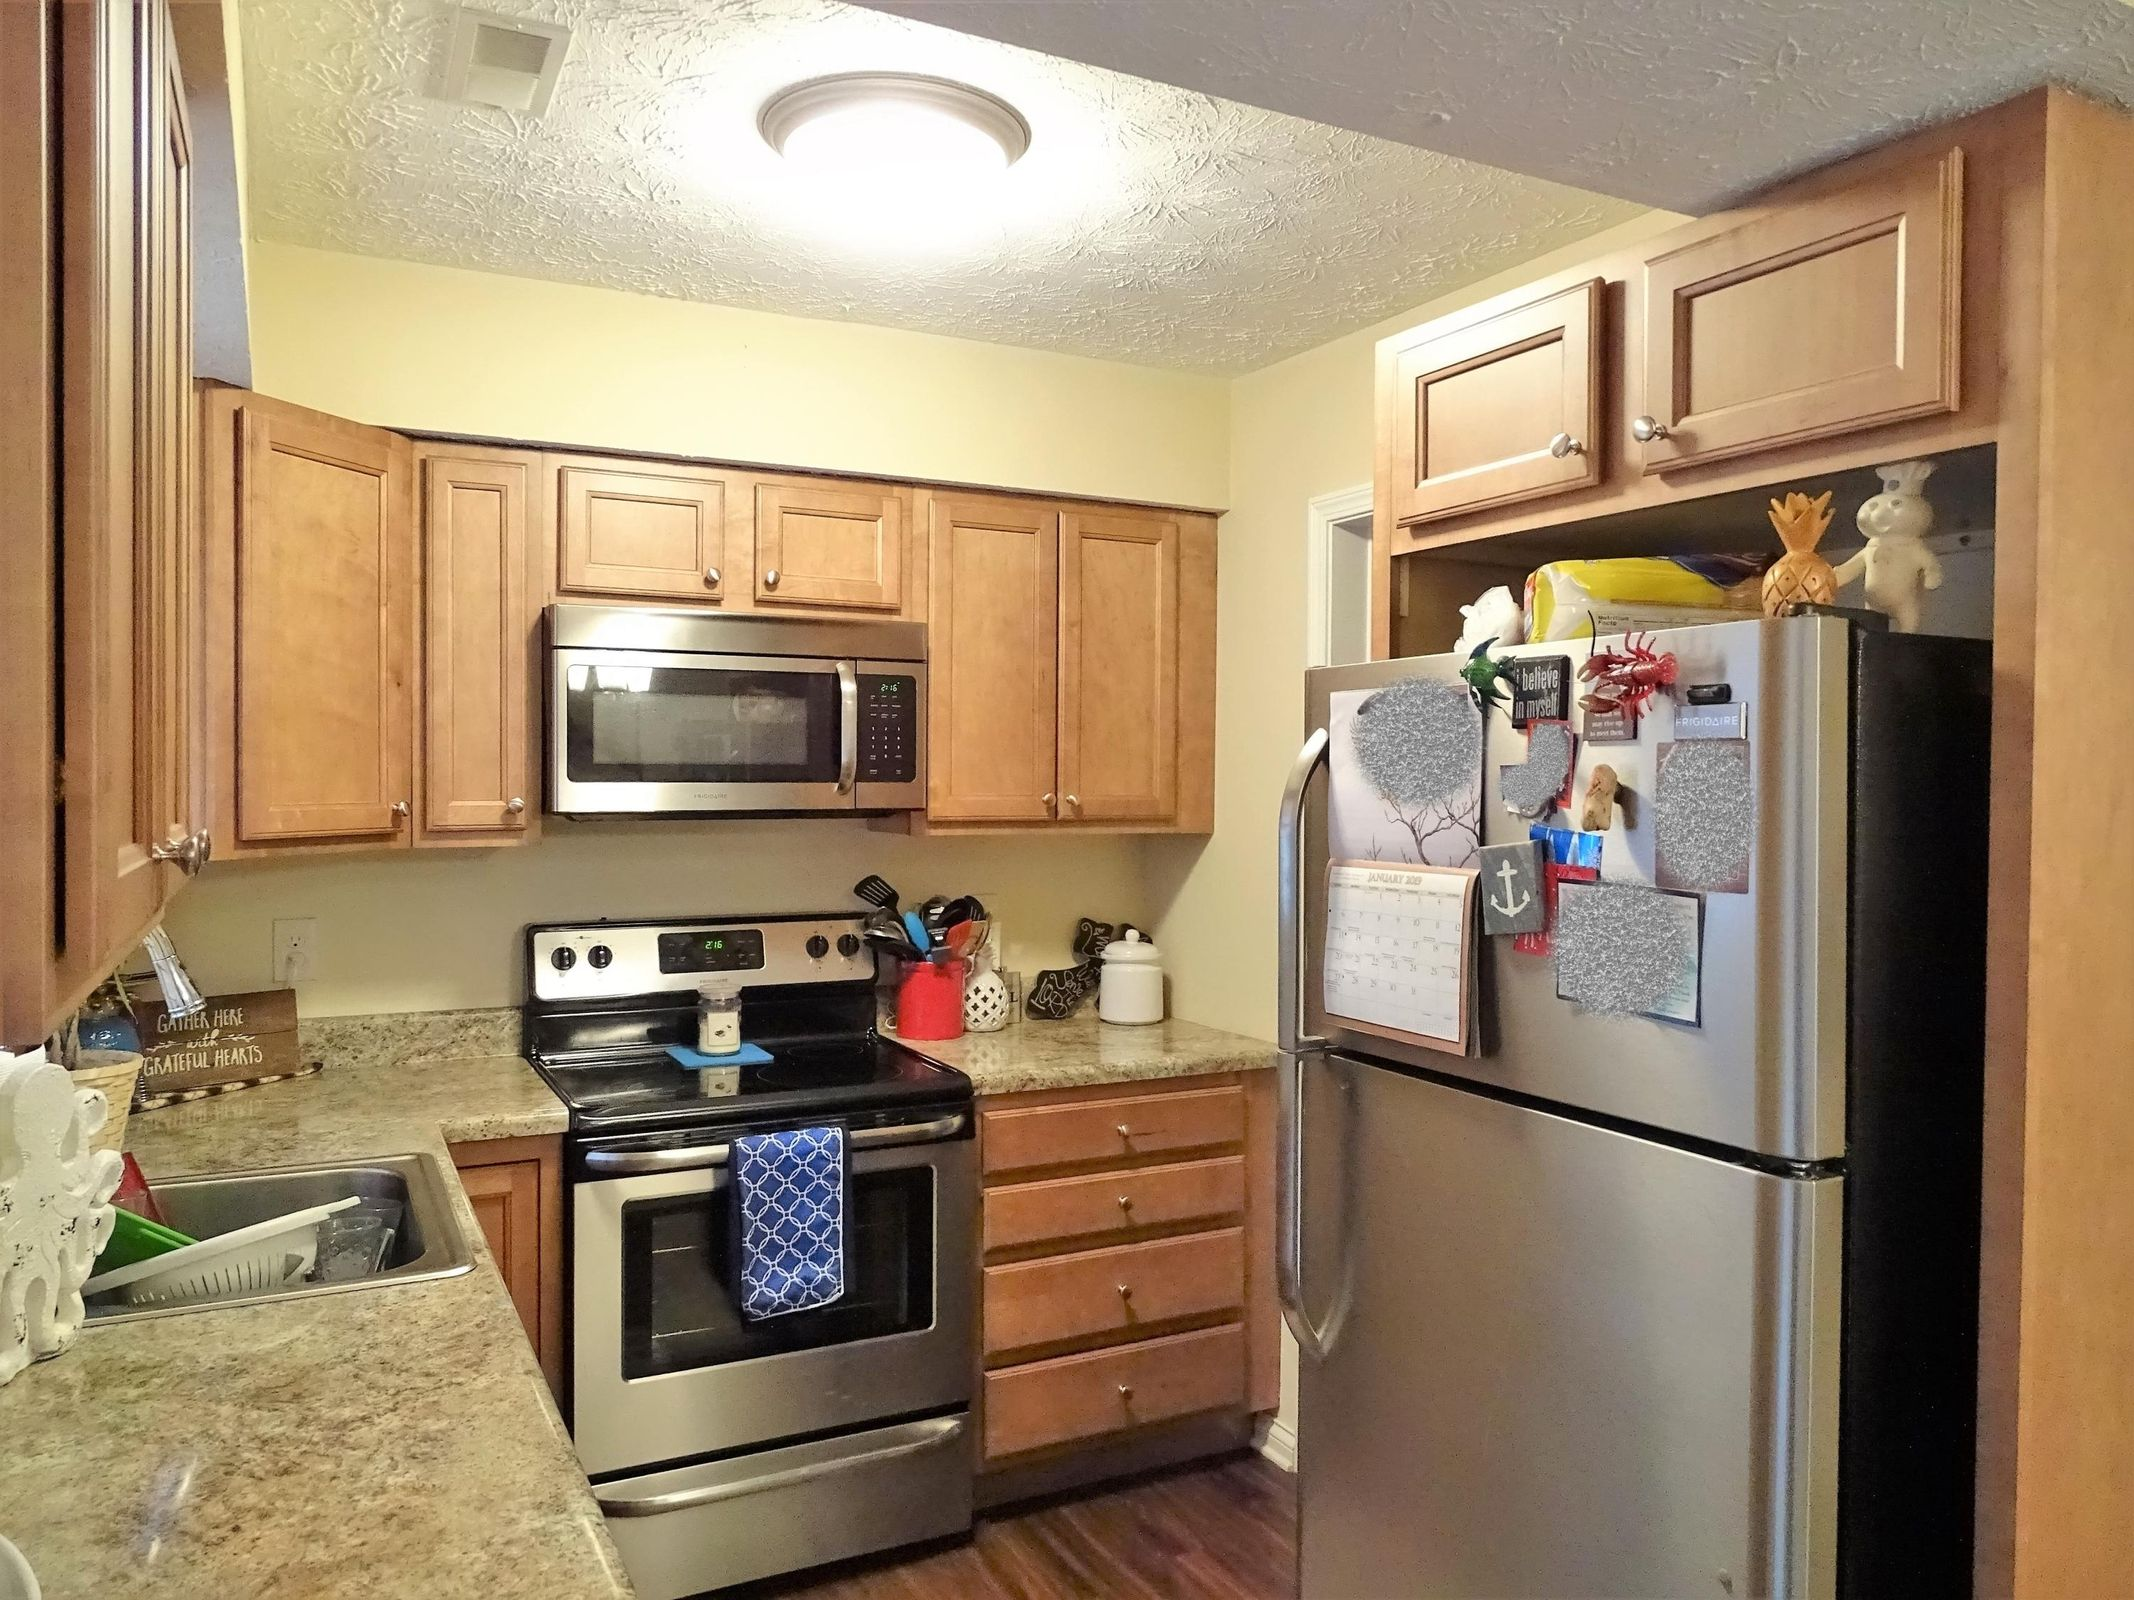 7 - Kitchen - updated a